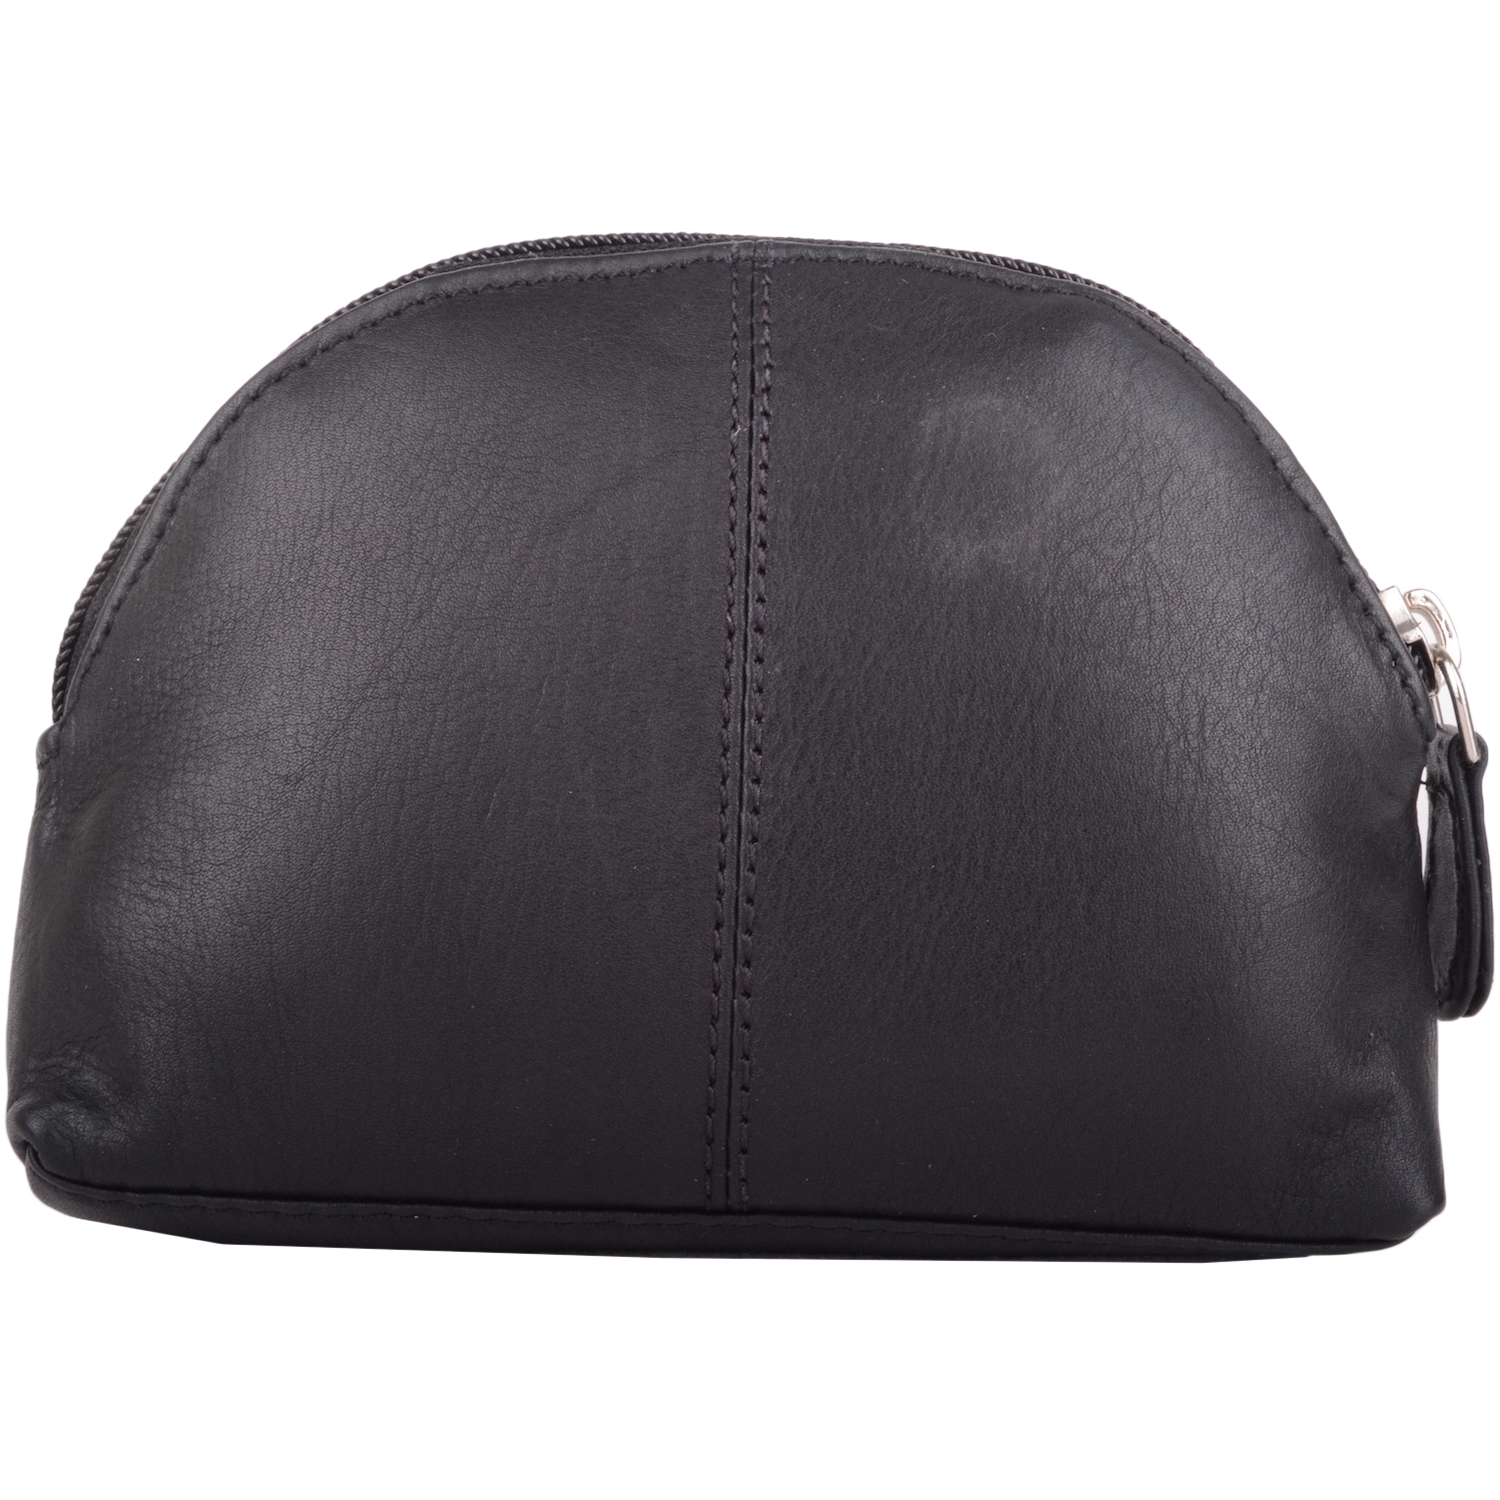 Soft Leather Coin / Money Purse - Betsy